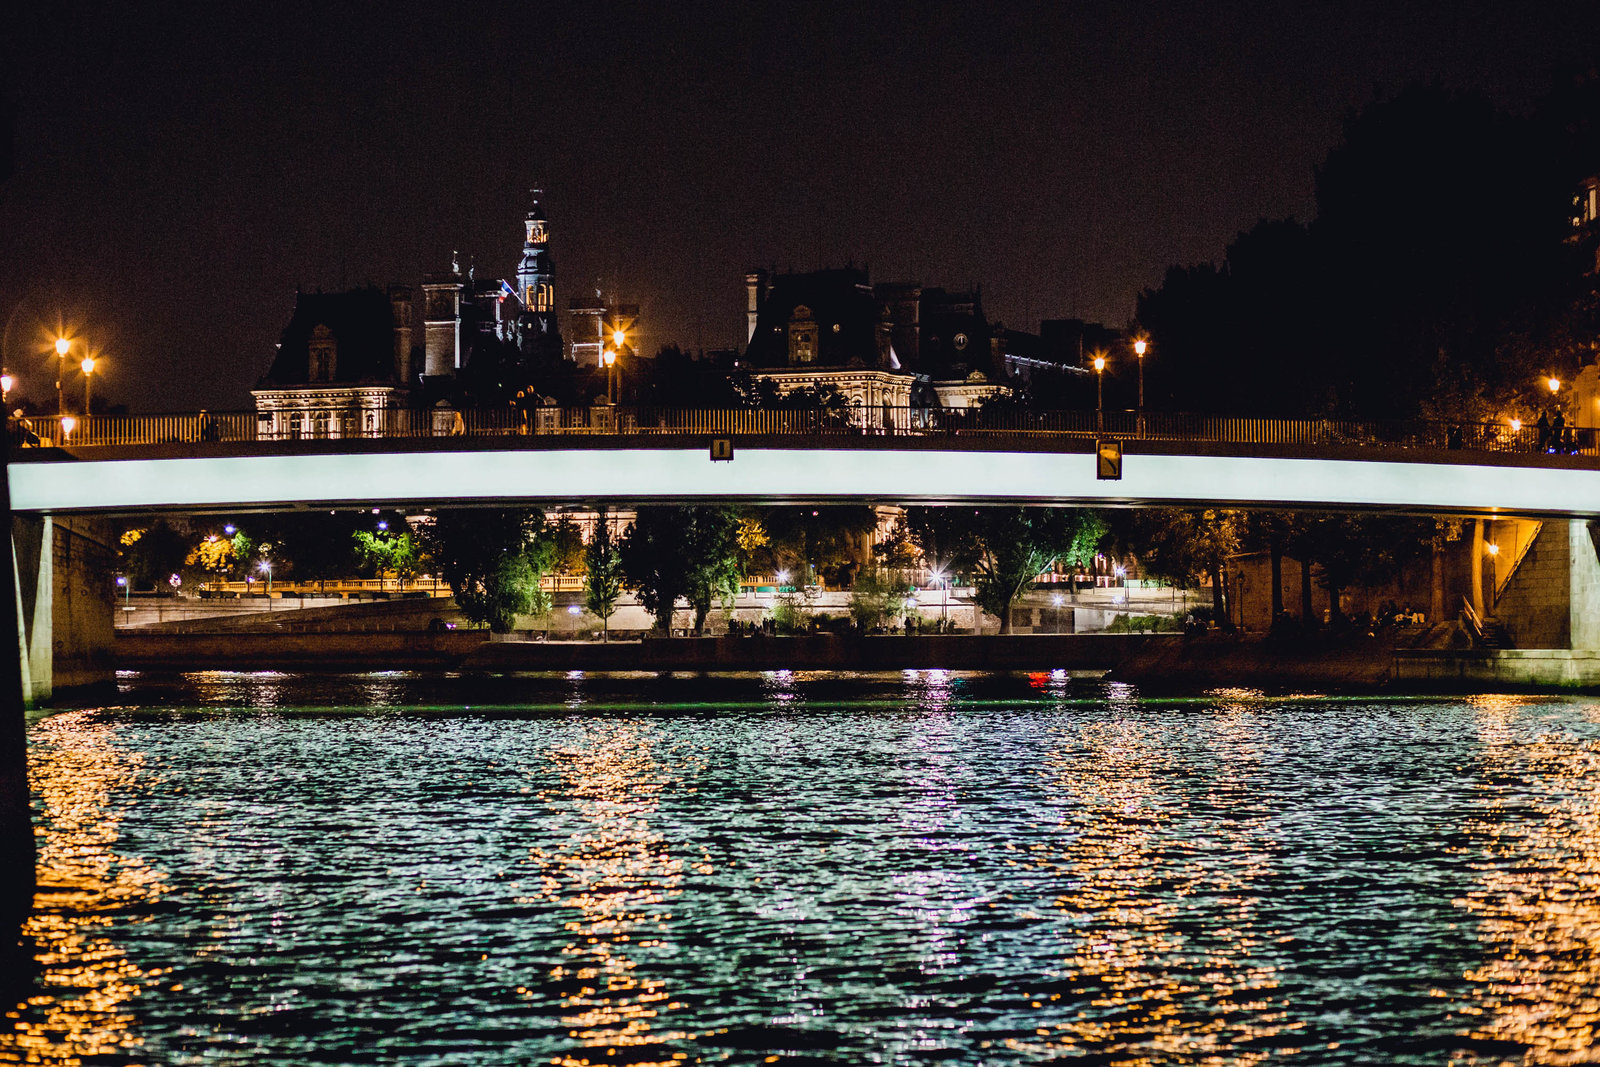 pont-saint-louis-night-paris-france-travel-destination-wedding-kate-timbers-photography-1840